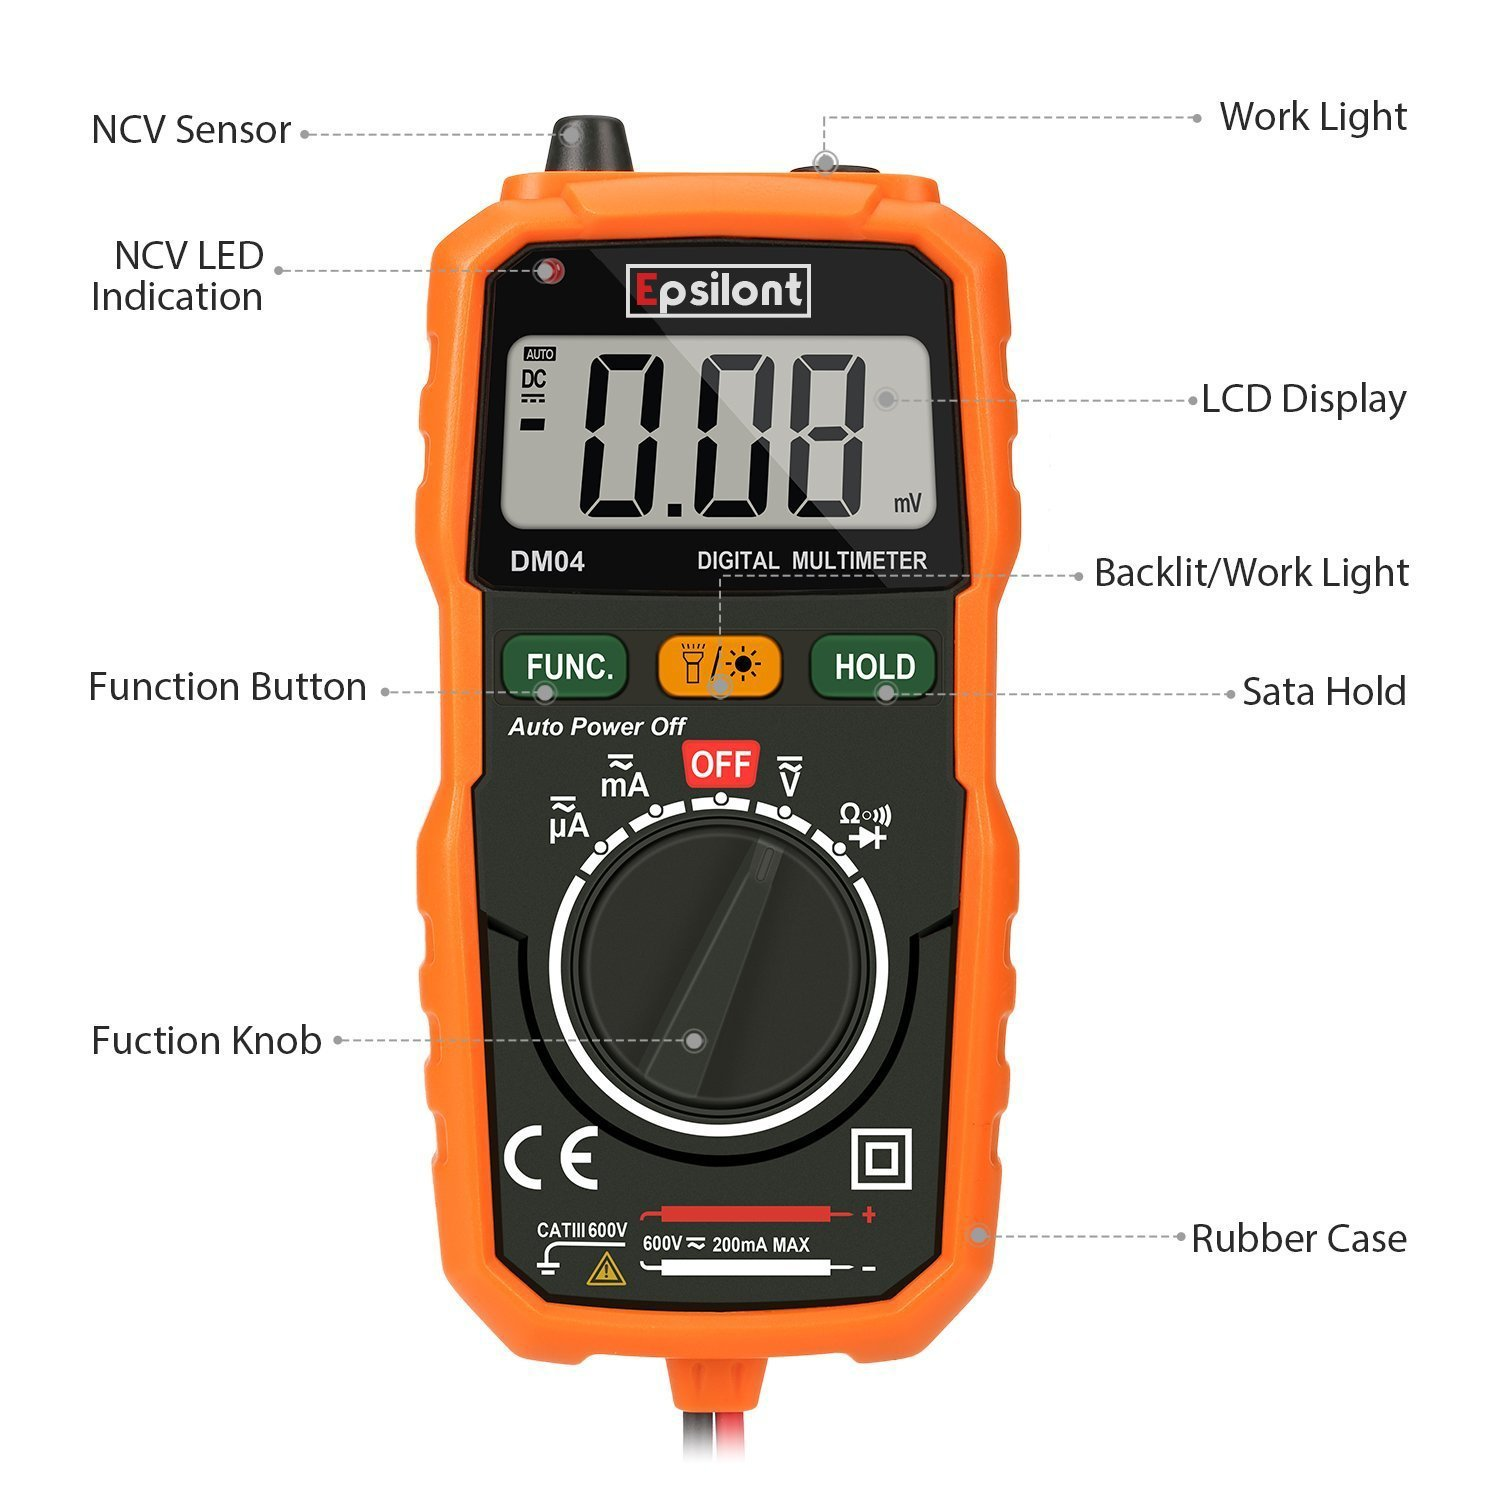 Epsilont Eps1000mm Digital Multimeter Auto Ranging Lowvoltagedetector Measuringandtestcircuit Circuit Diagram Measuring Instrument Ac Voltage Detector Amp Ohm Volt Meter Multi Tester Diode With Backlight